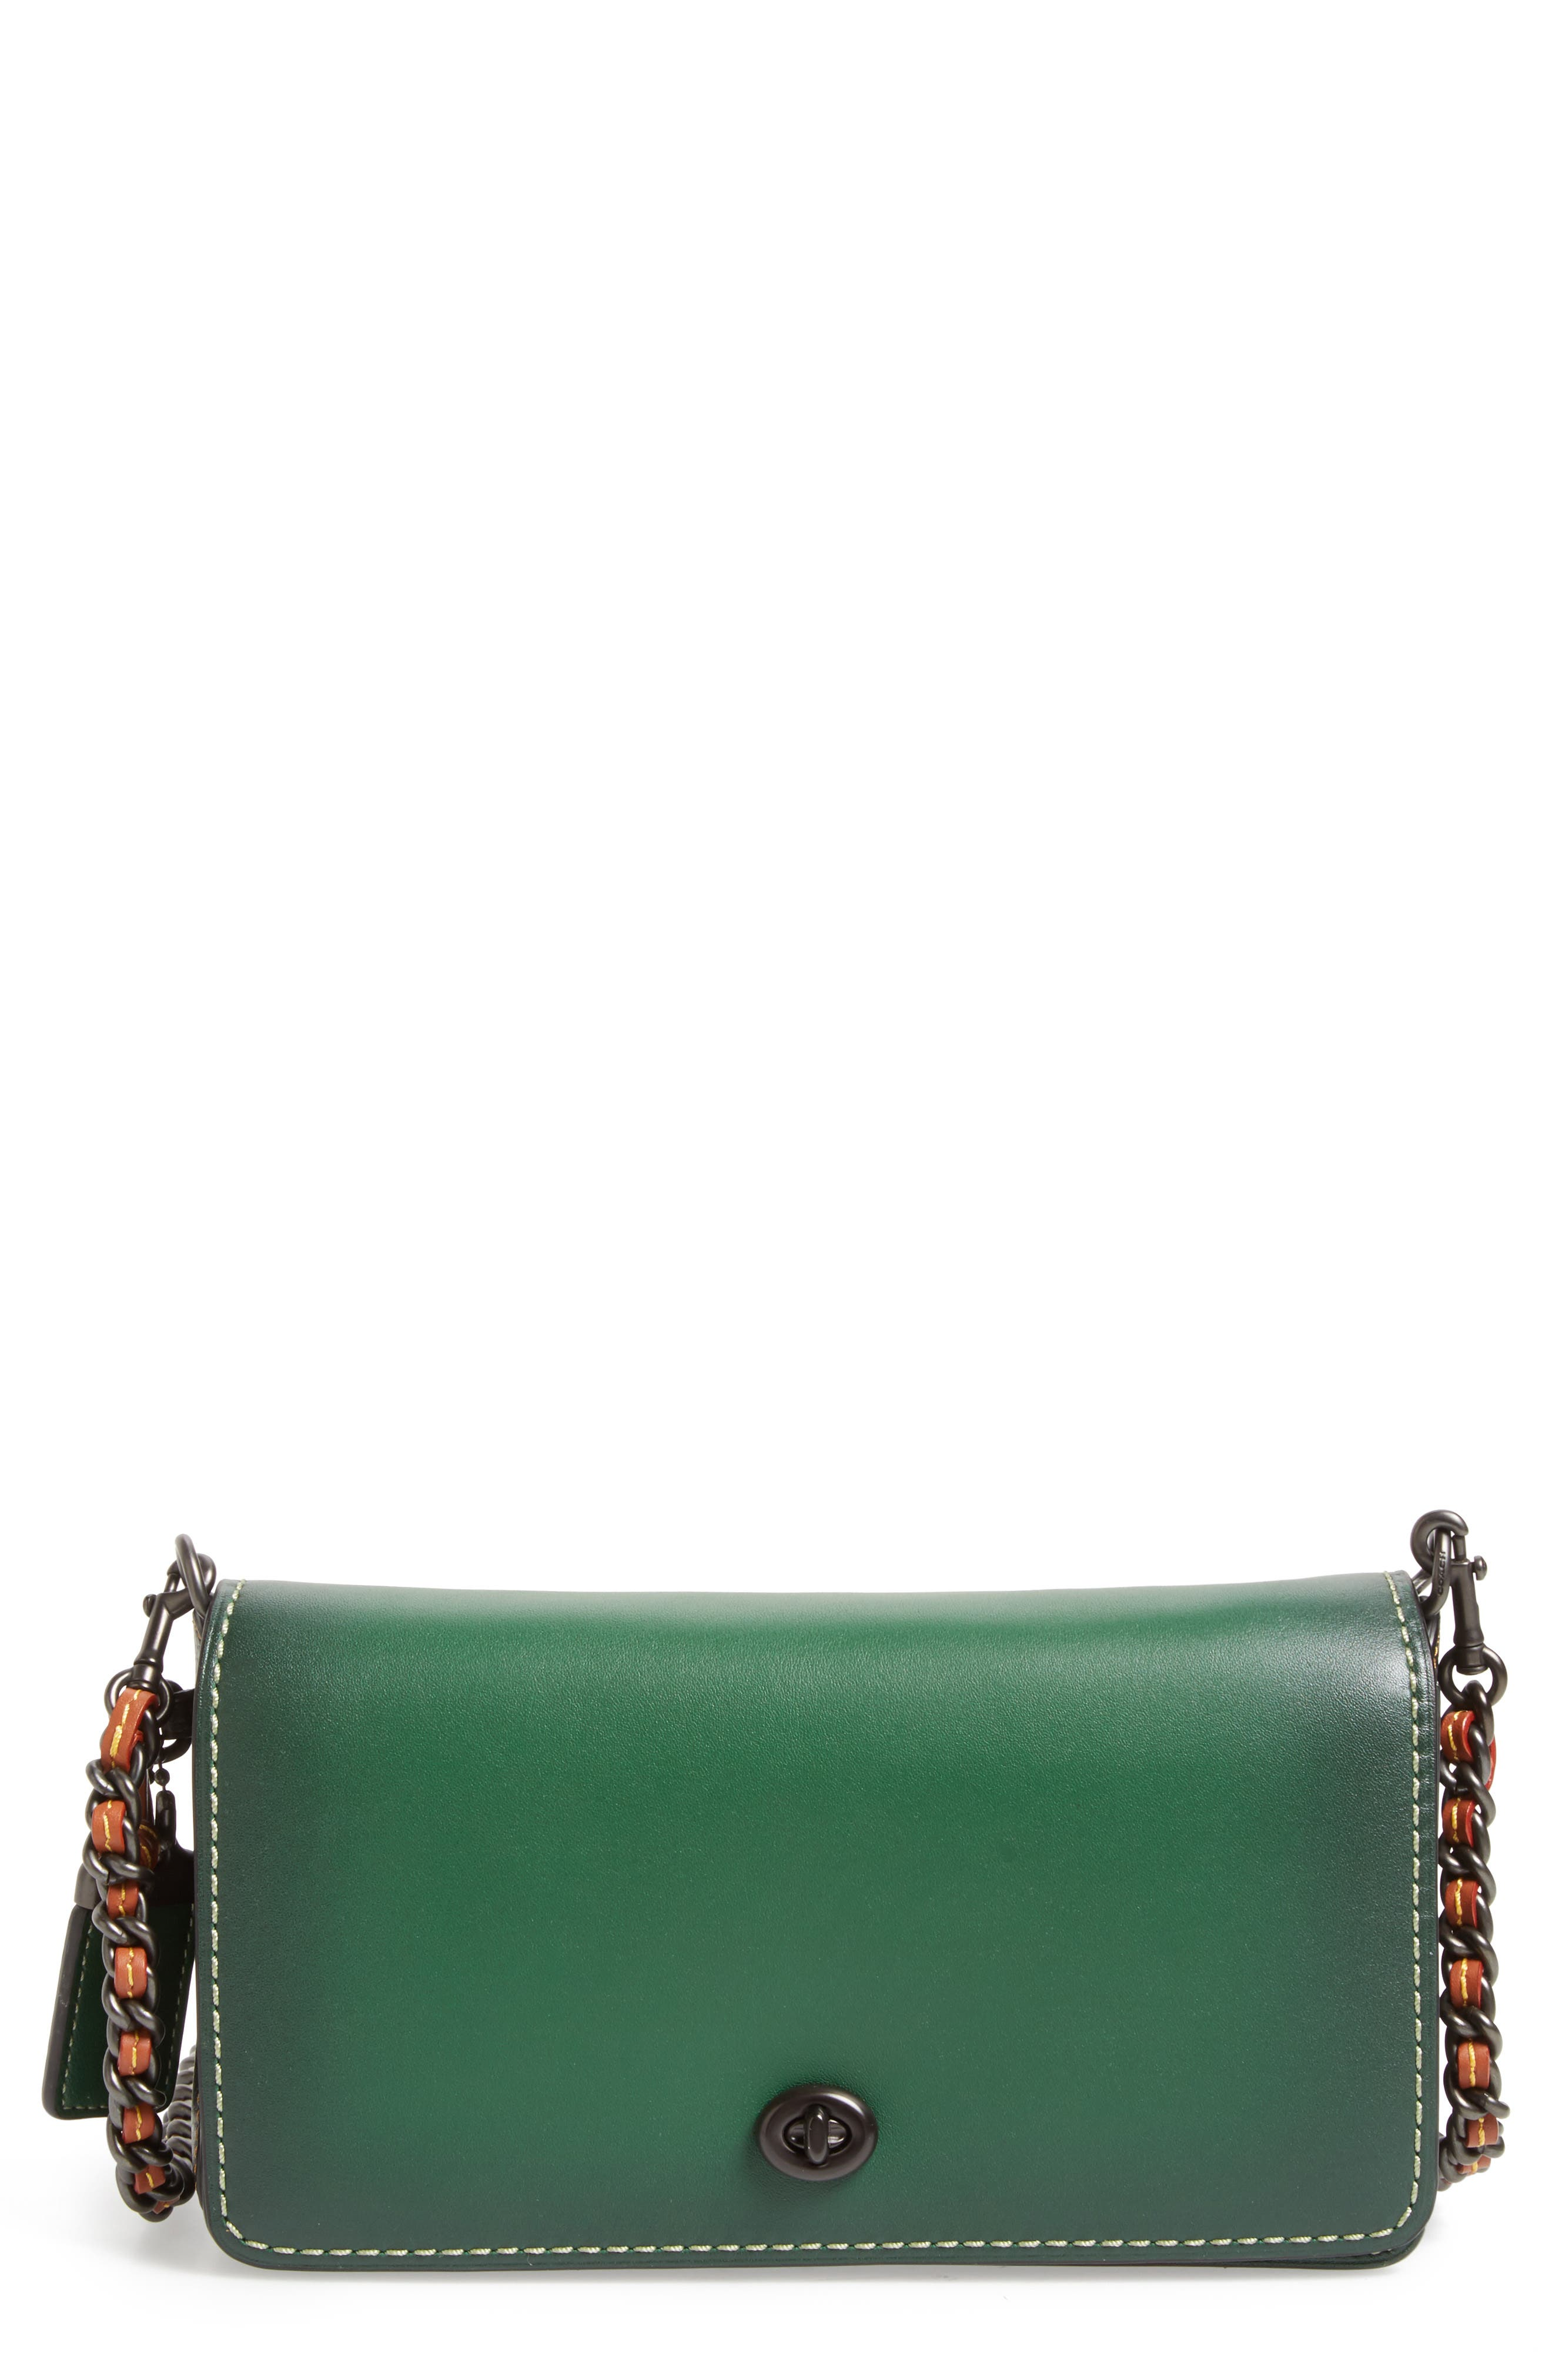 'Dinky' Leather Crossbody Bag,                             Main thumbnail 1, color,                             001